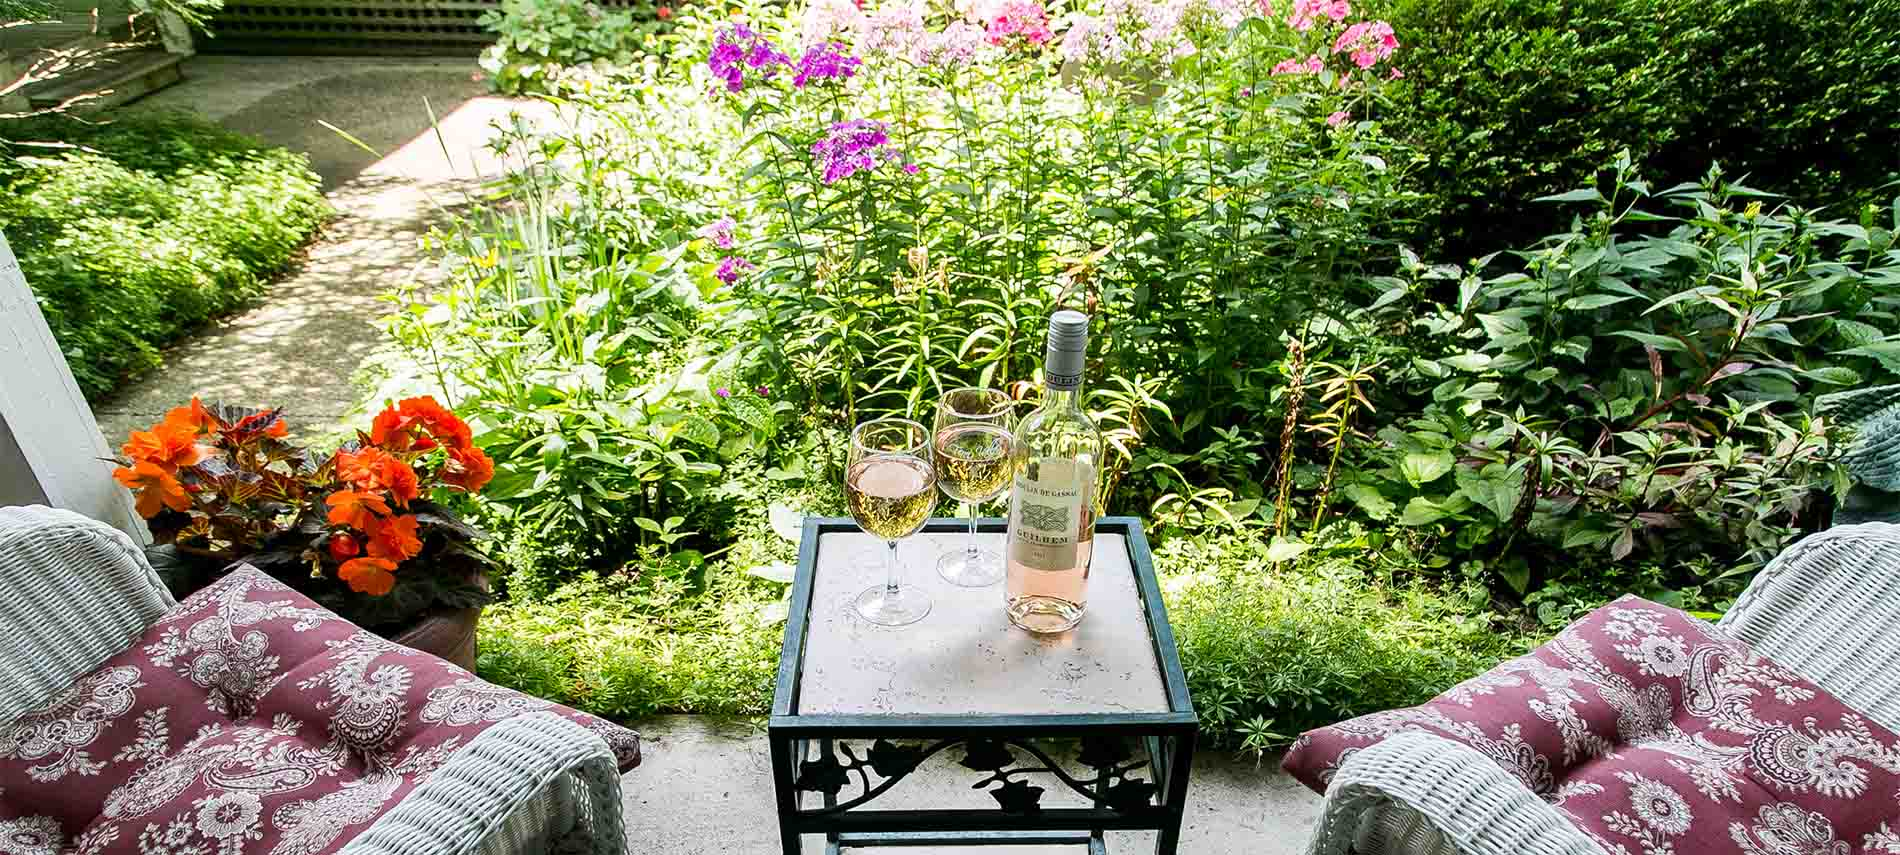 Table with two wine glasses and bottle of pink wine. Wicker chairs sitting next to it.